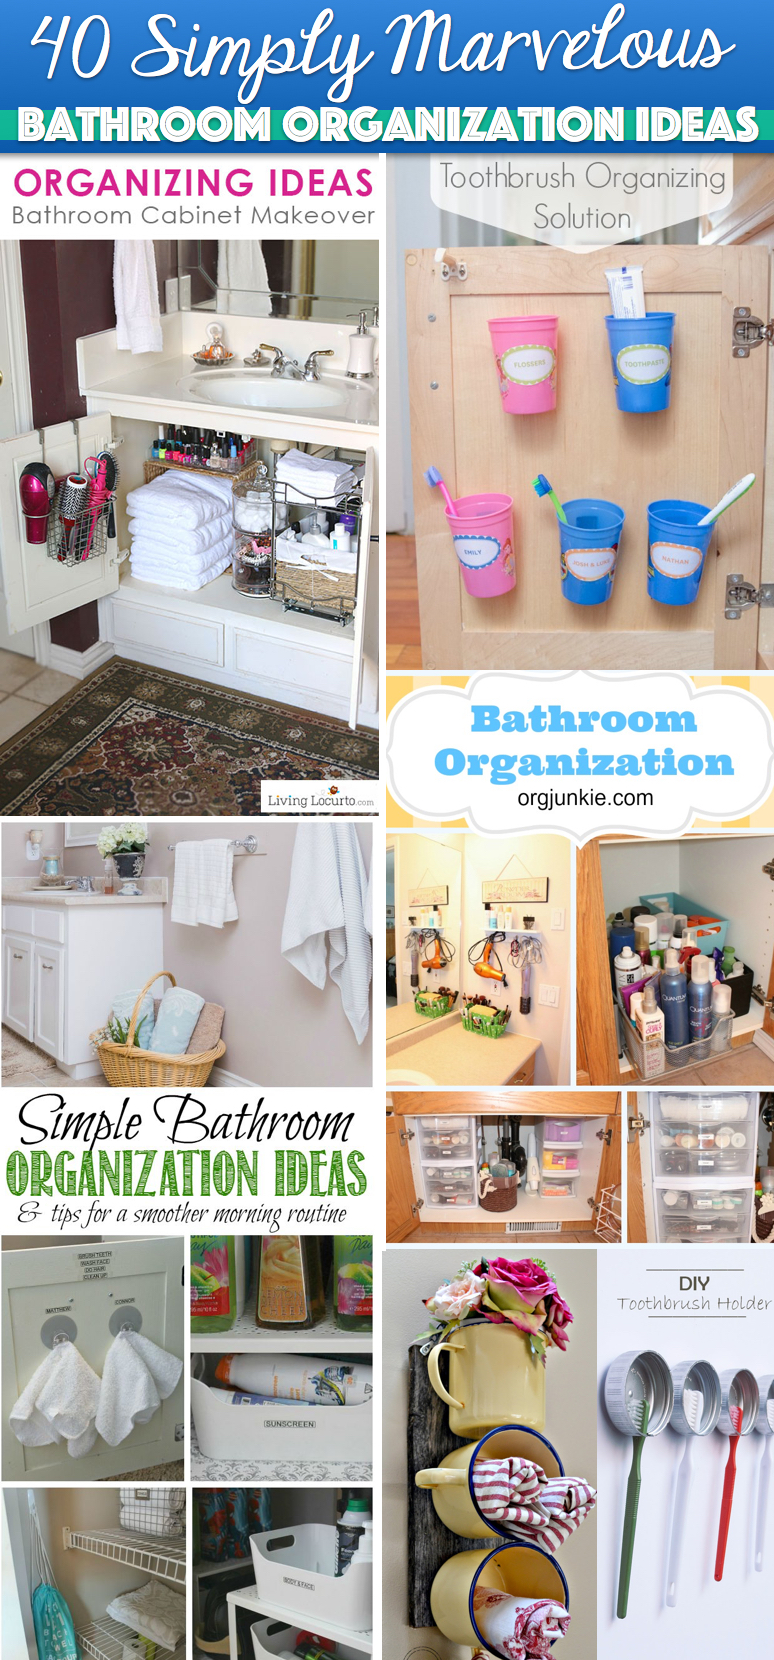 40 Simply Marvelous Bathroom Organization Ideas To Get Rid